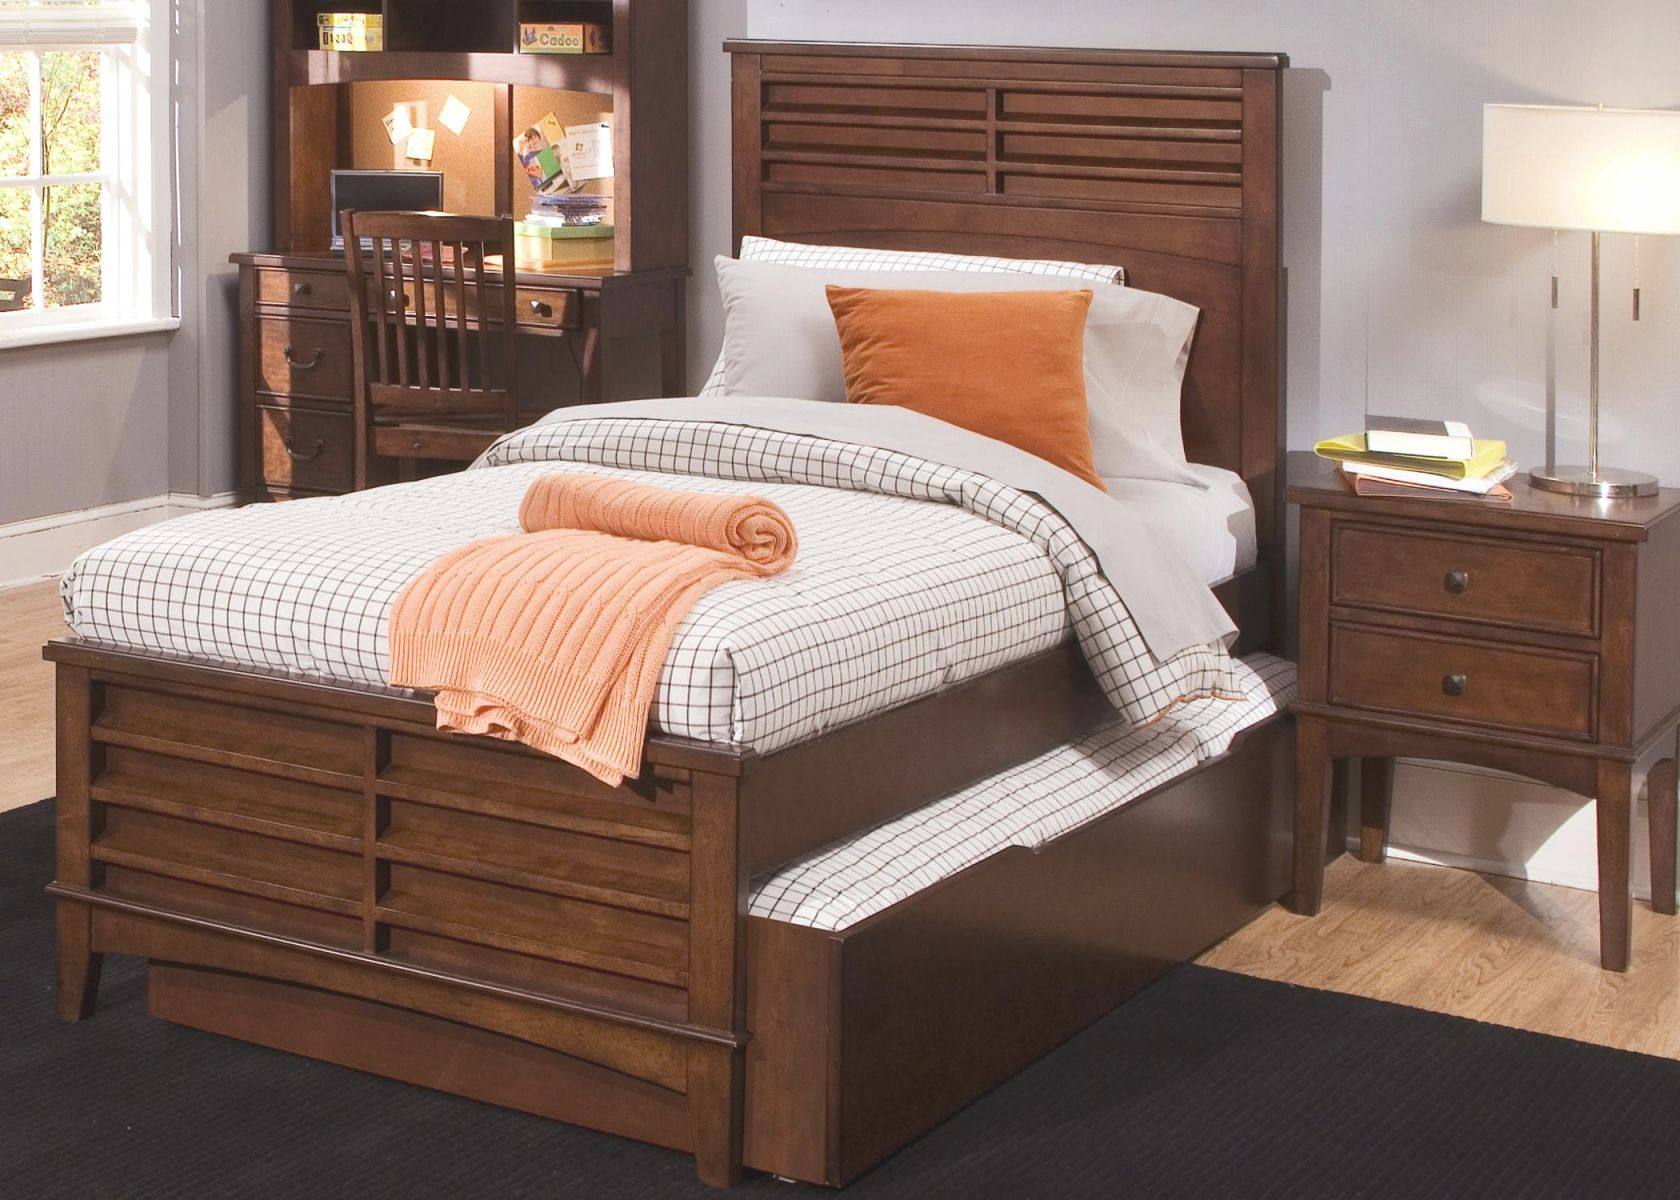 Chelsea Square Youth Full Size Panel Bed With Trundle Storage Drawer Liberty Furniture At Royal Furniture inside Full Size Bedroom Furniture Sets